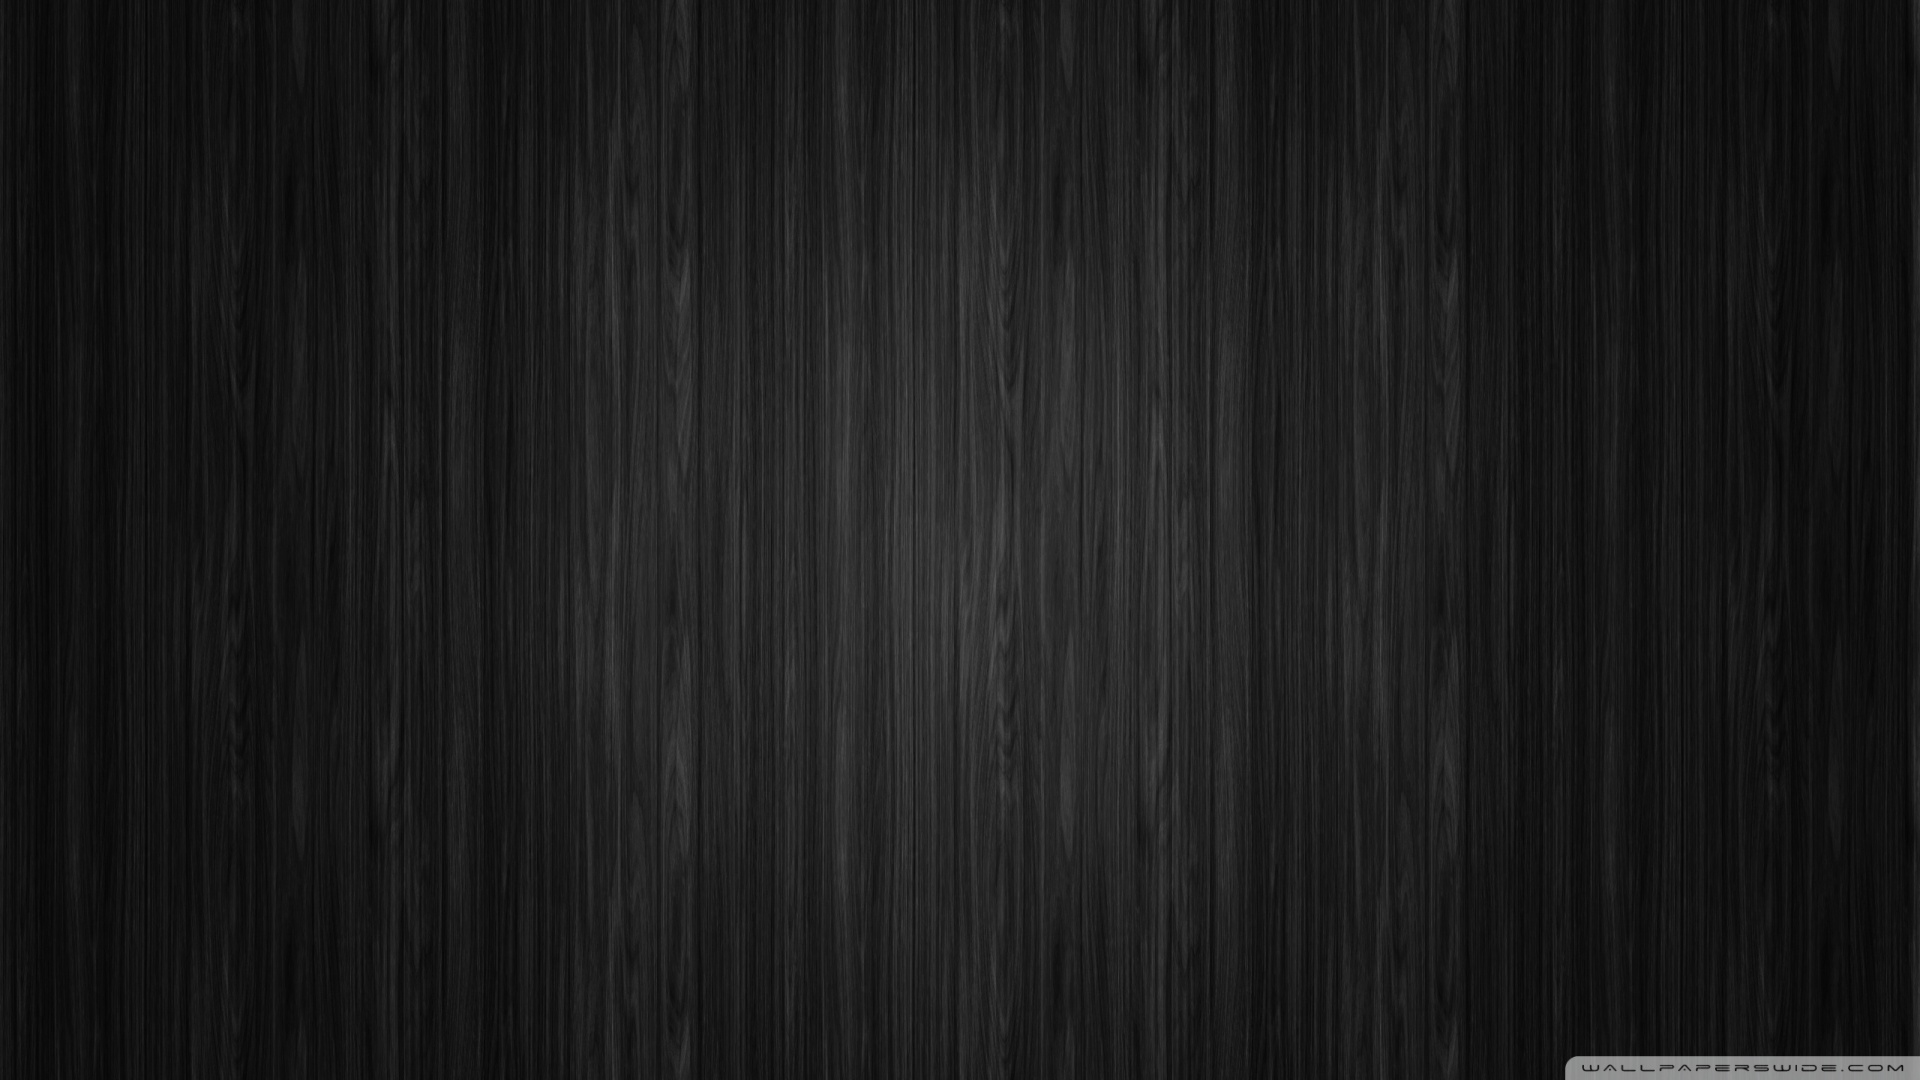 Wood Background Pictures Free Download